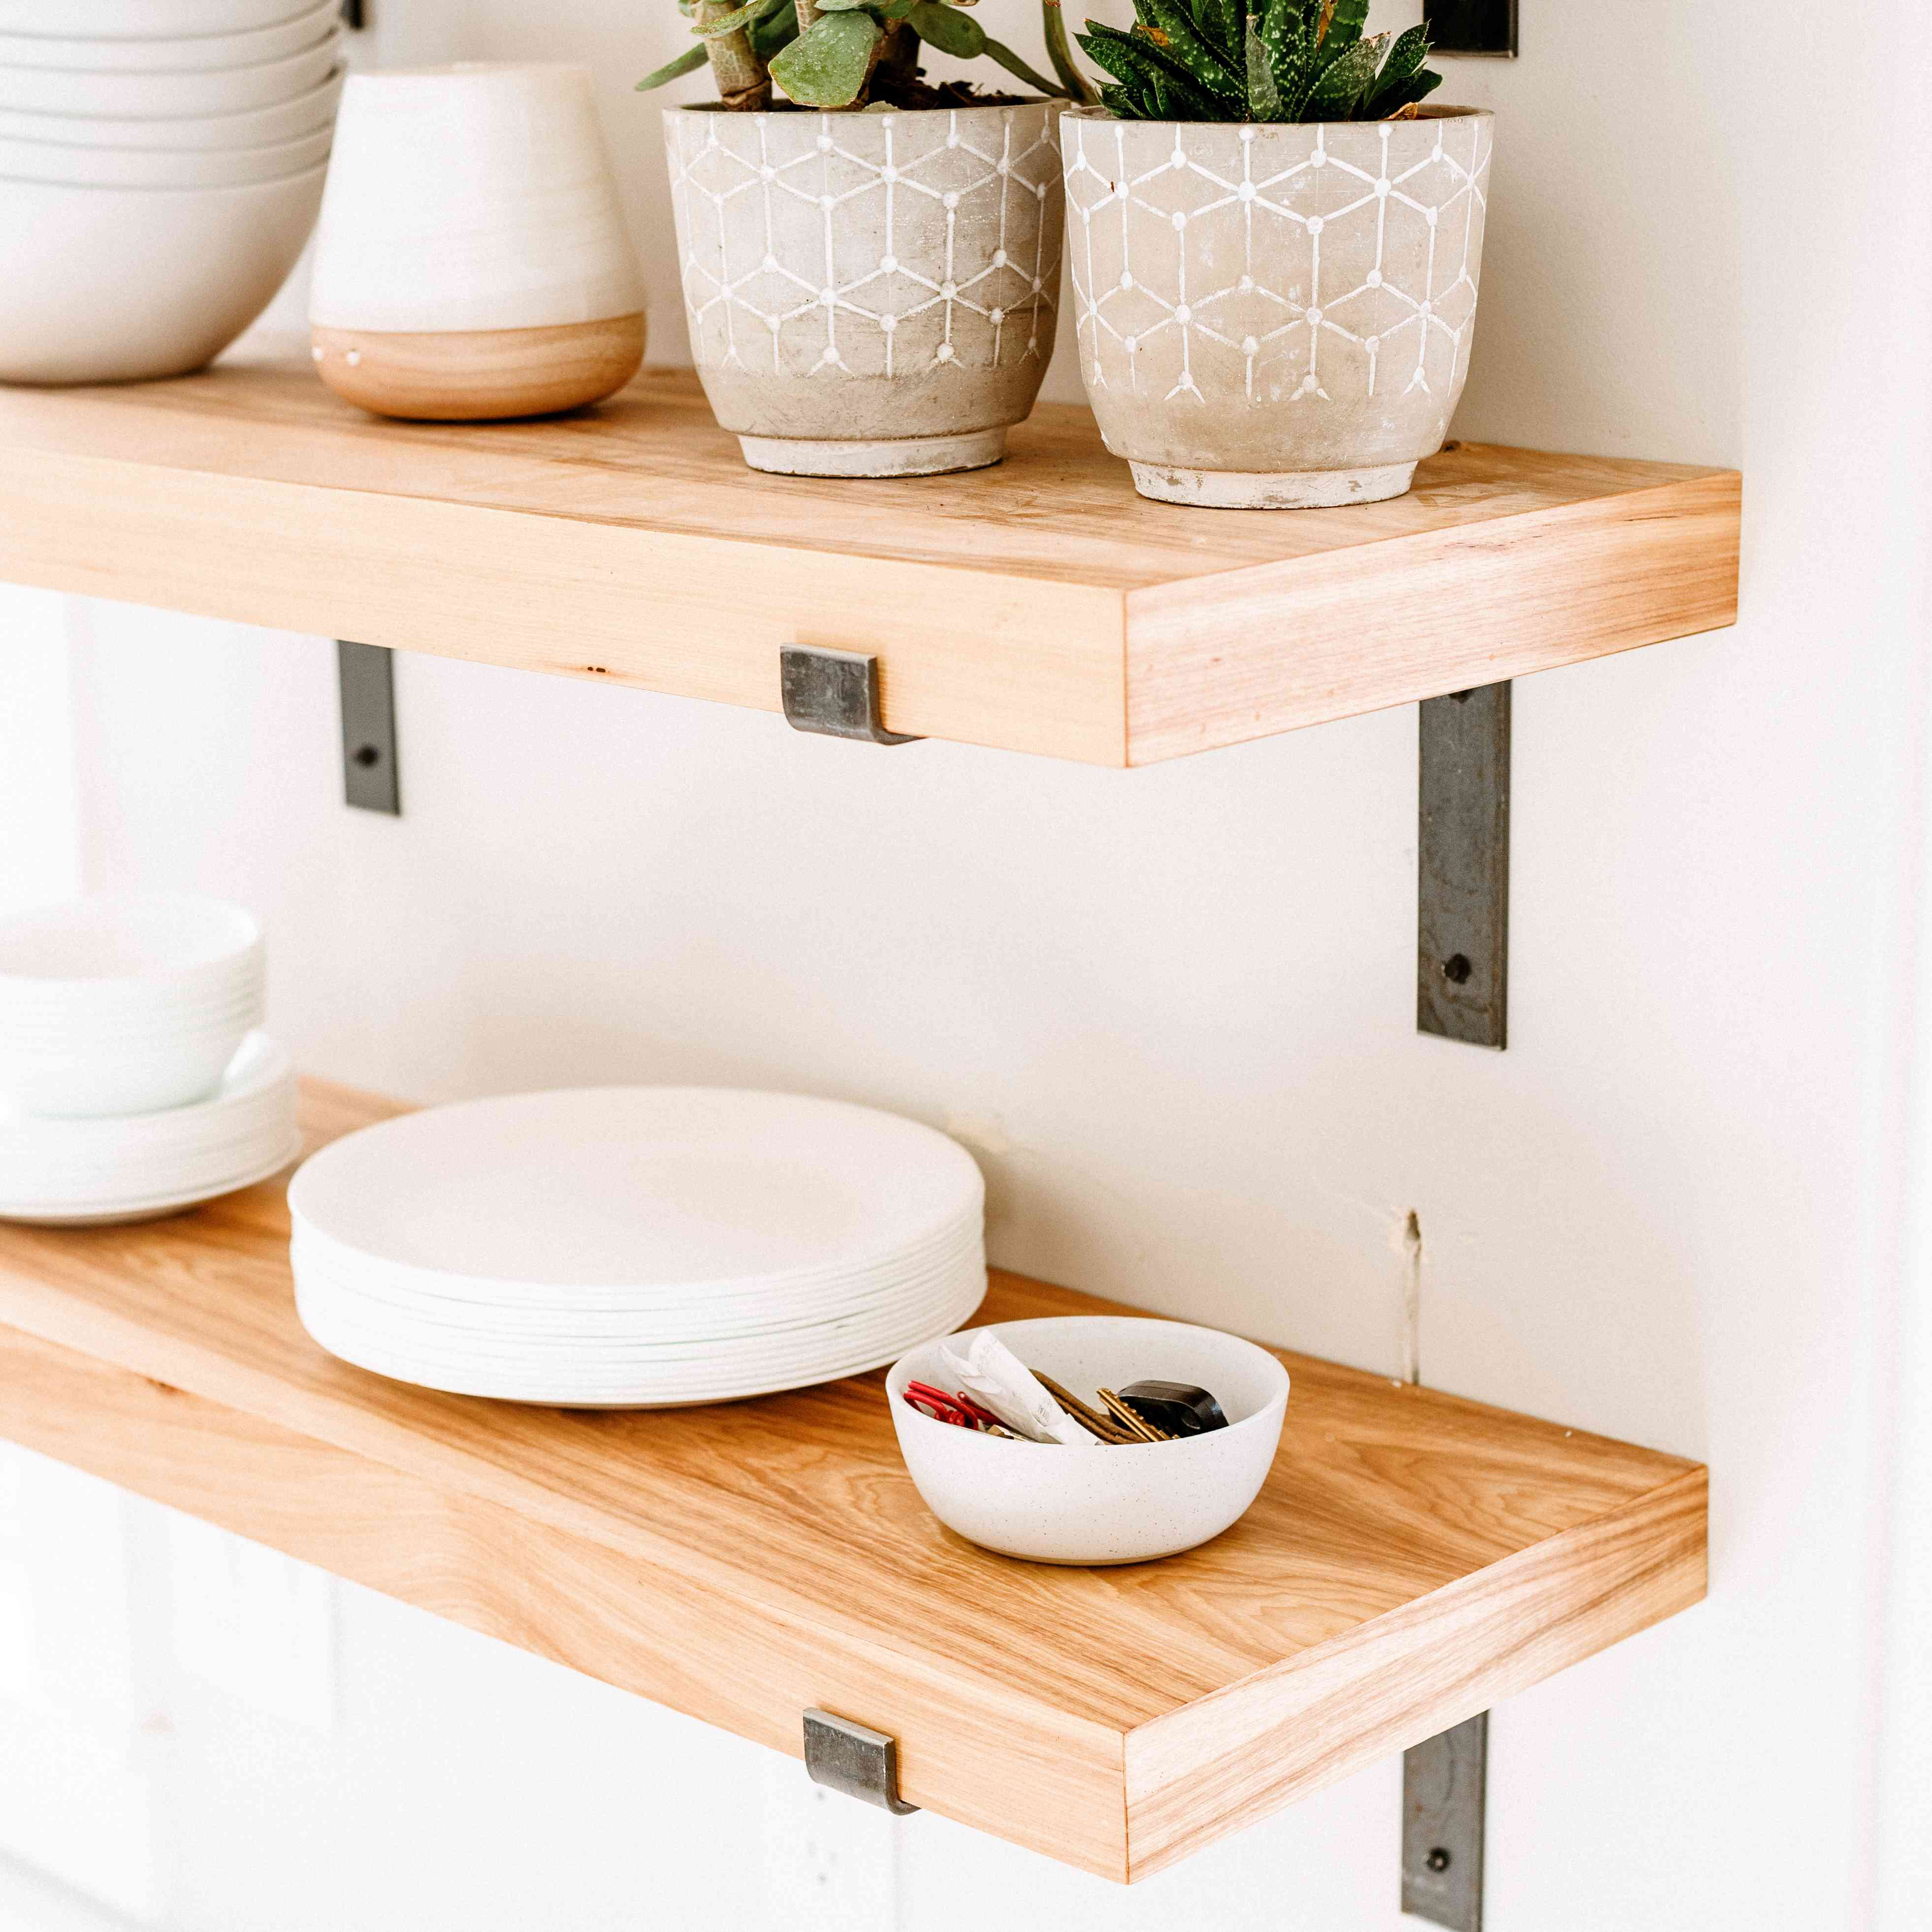 Shelving can free up counter space